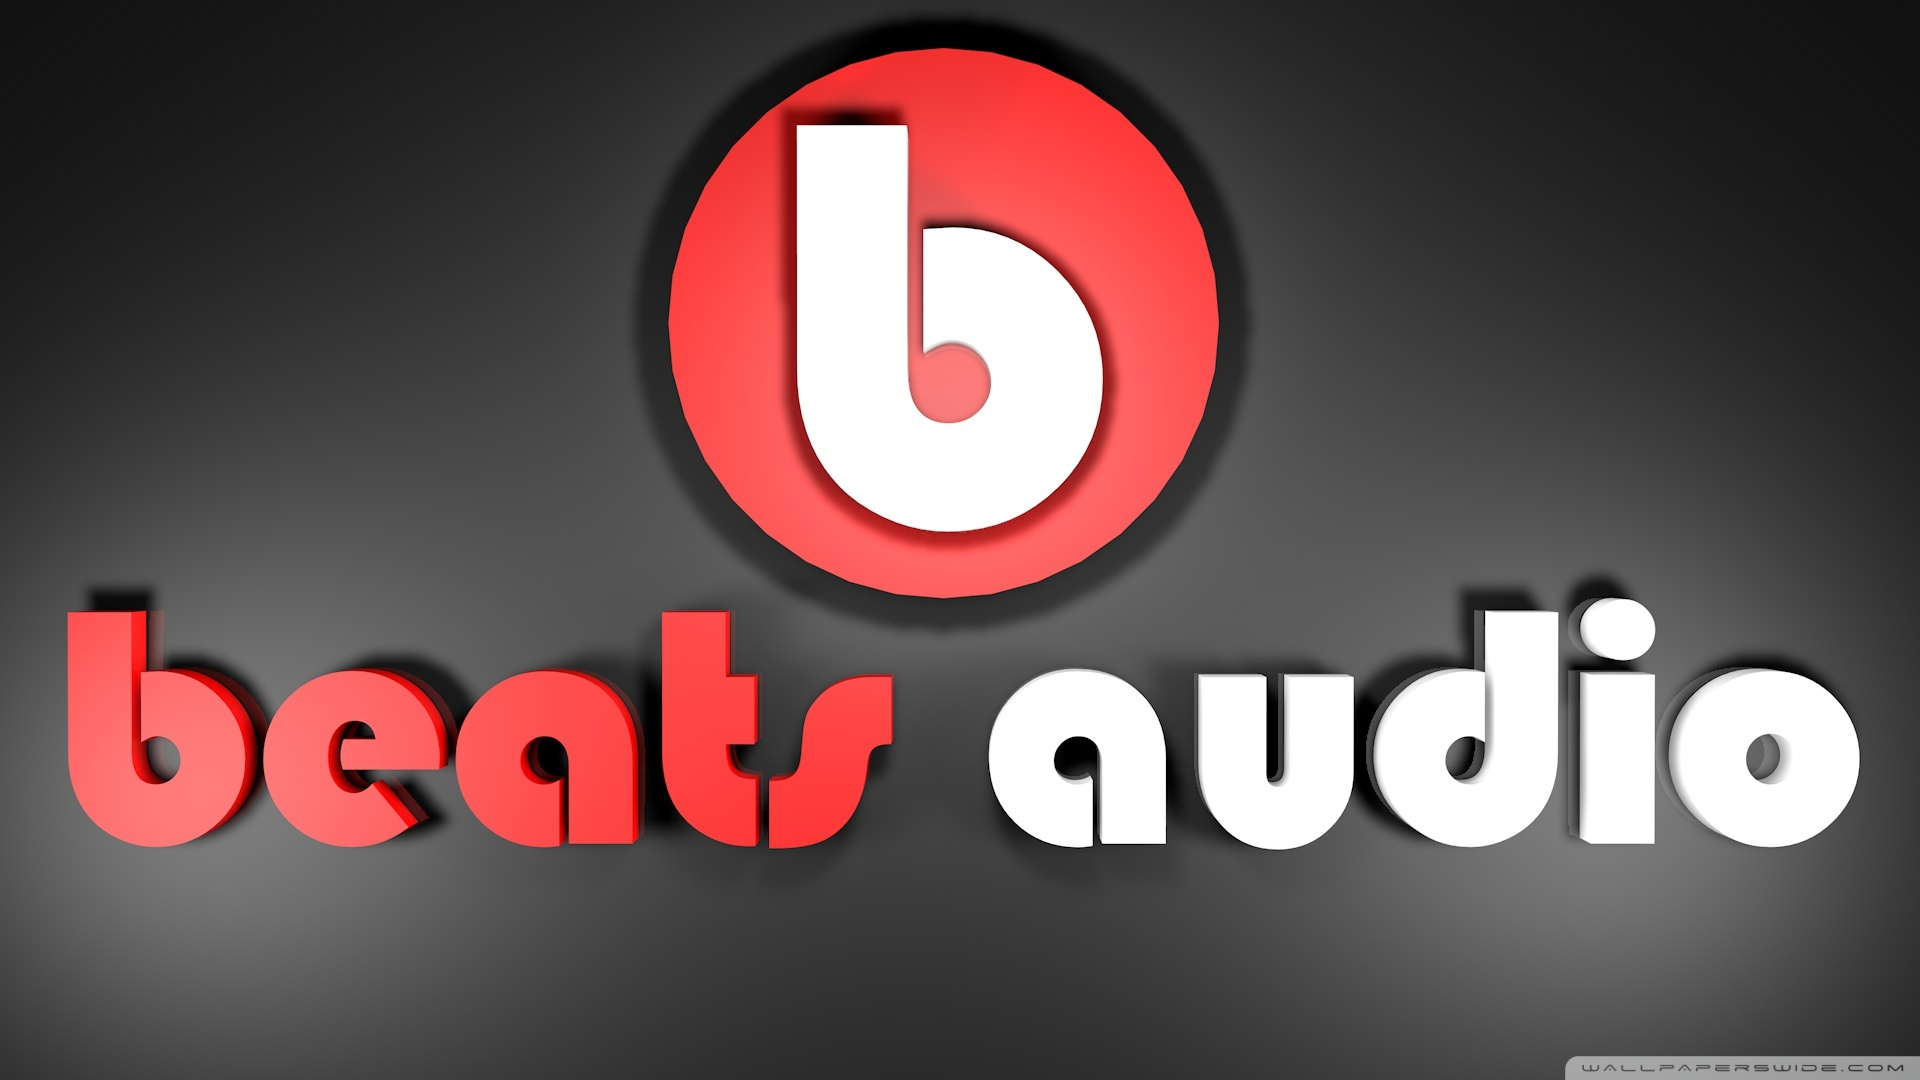 beats audio wallpaper 1920x1080 54846